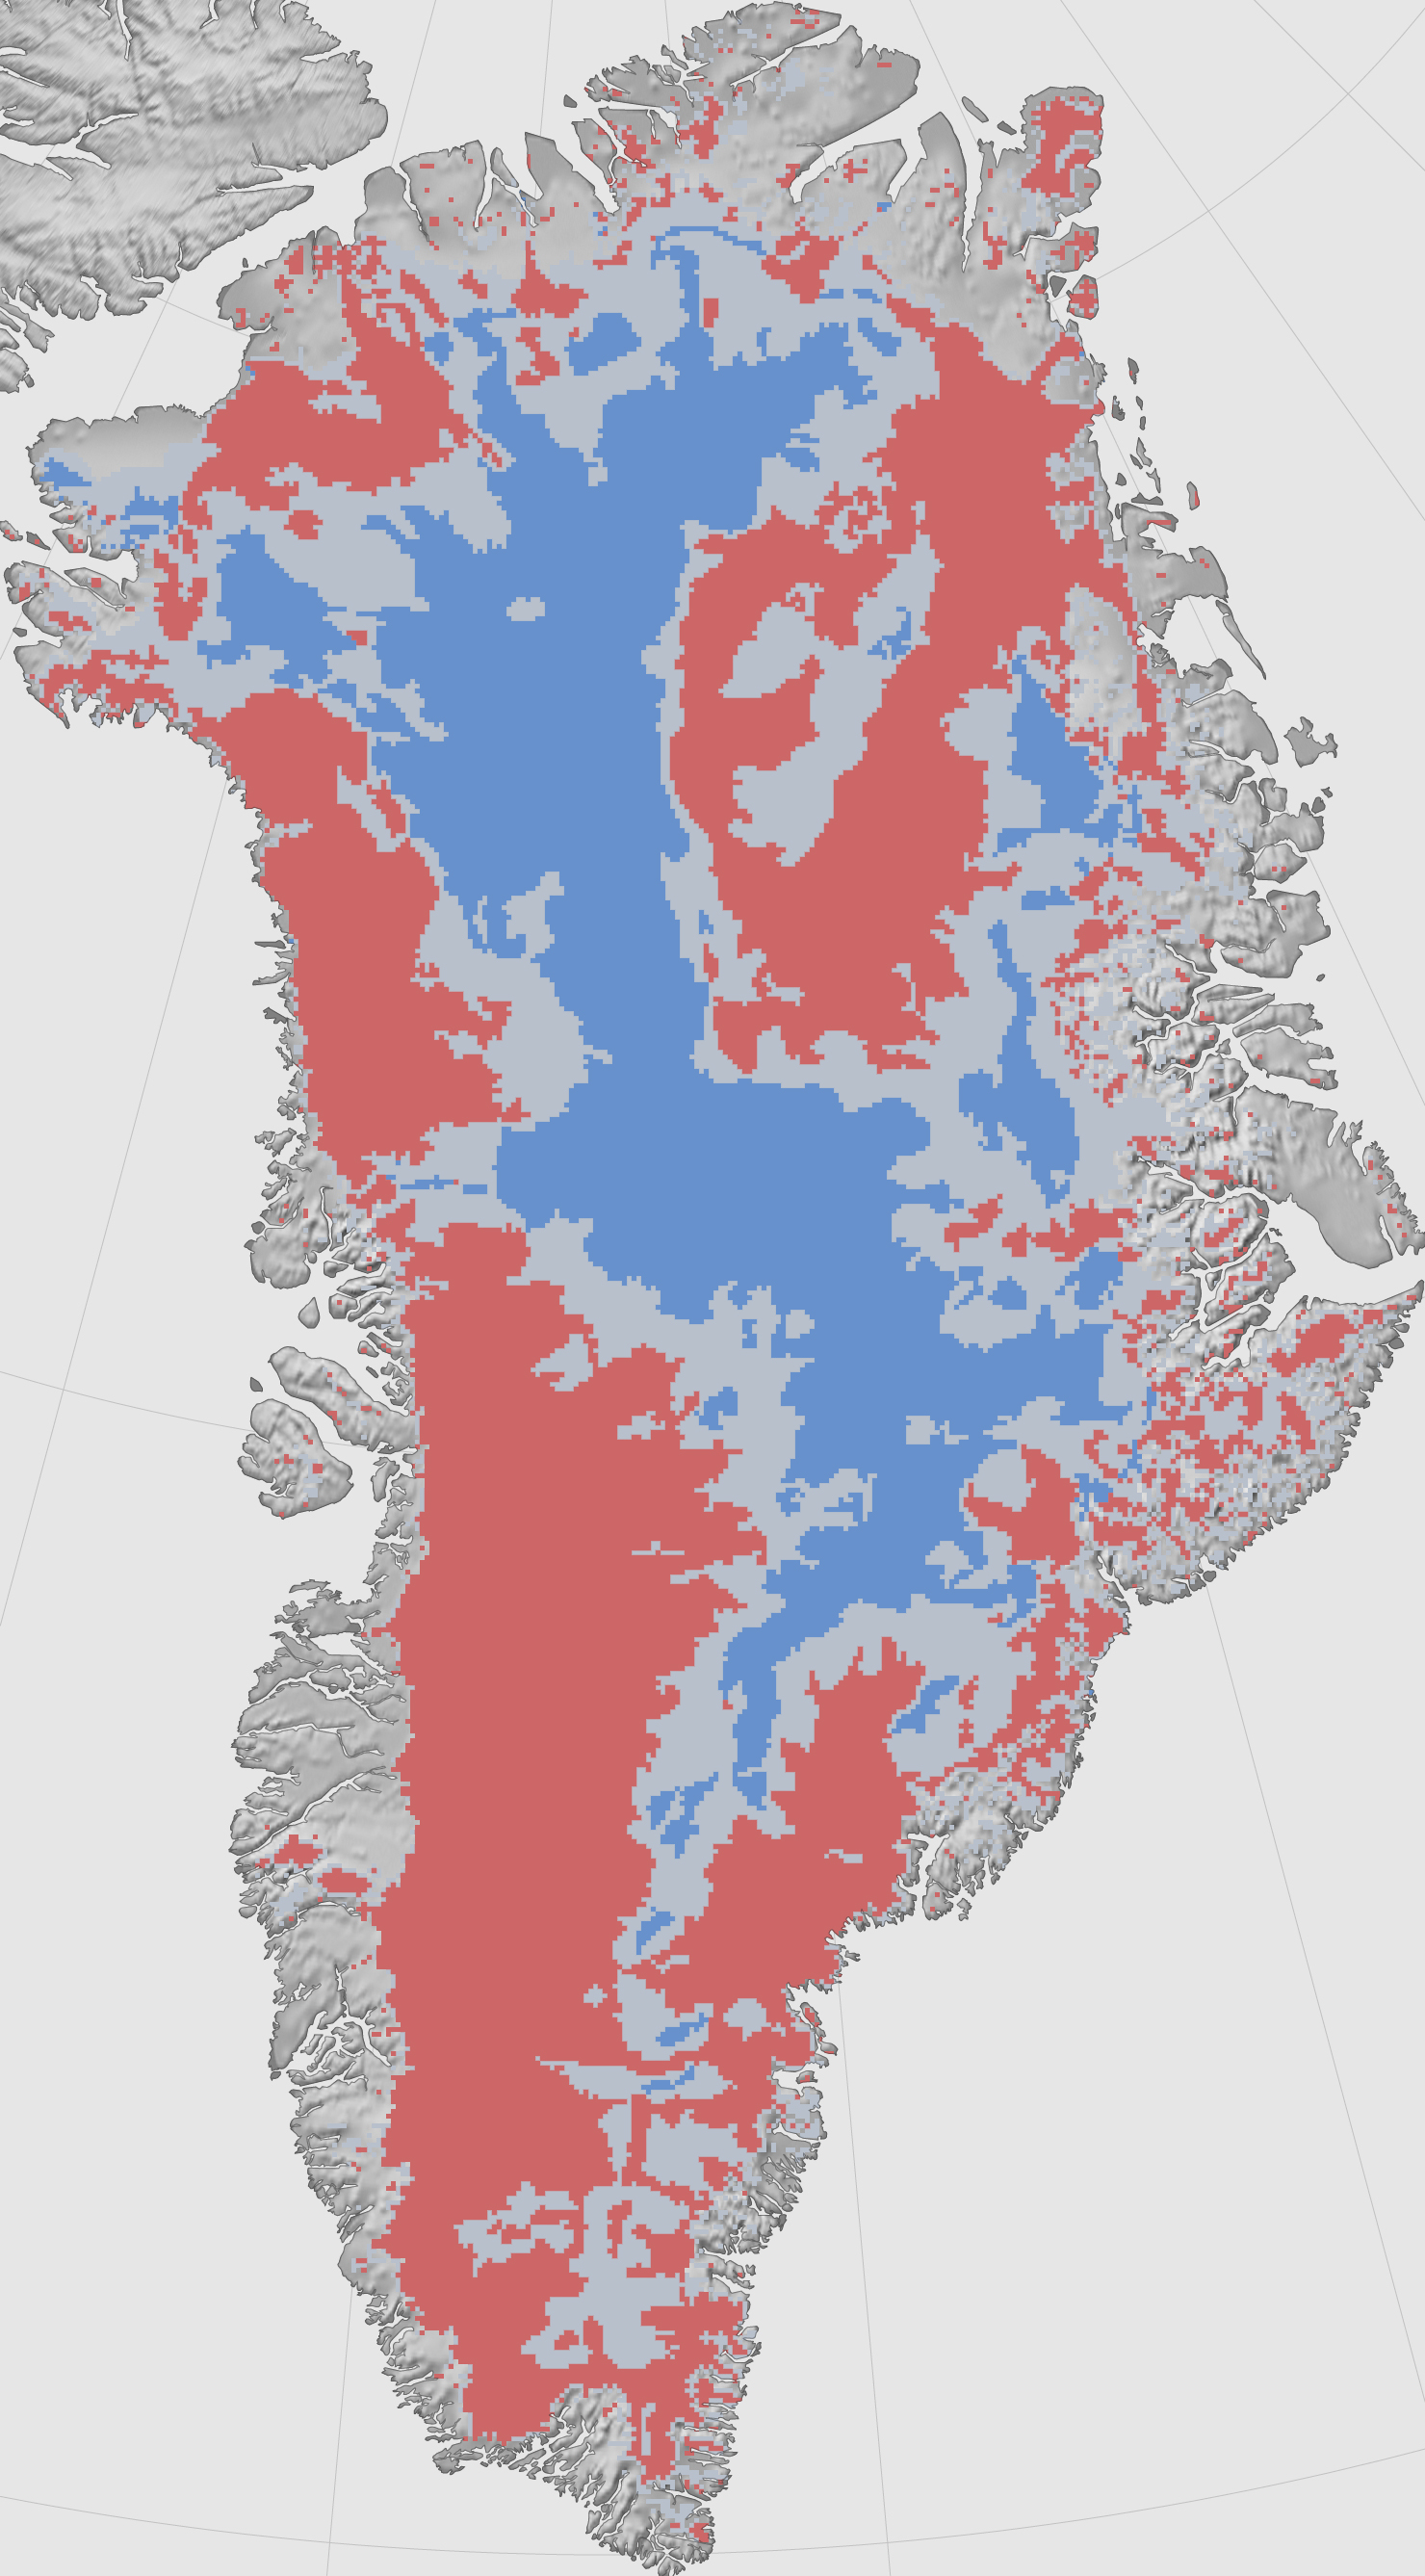 Melt at the Base of the Greenland Ice Sheet Image of the Day